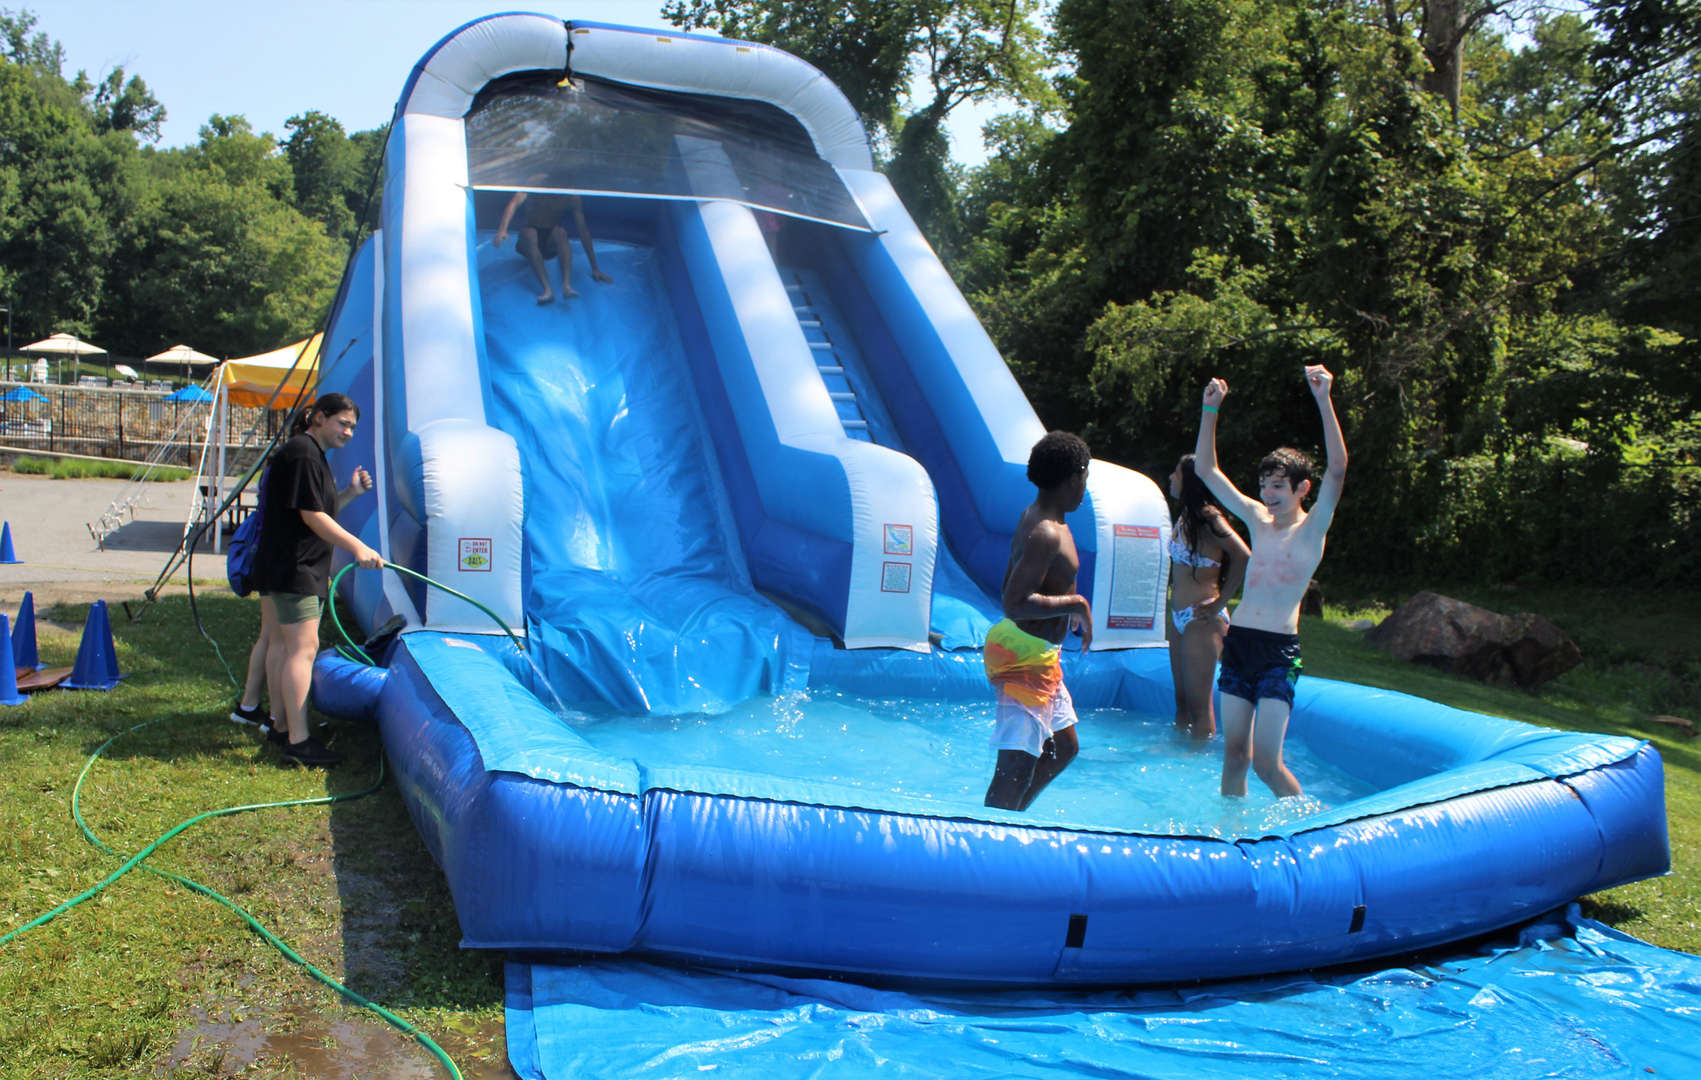 A boy pumps his arms up after sliding down the water slide.